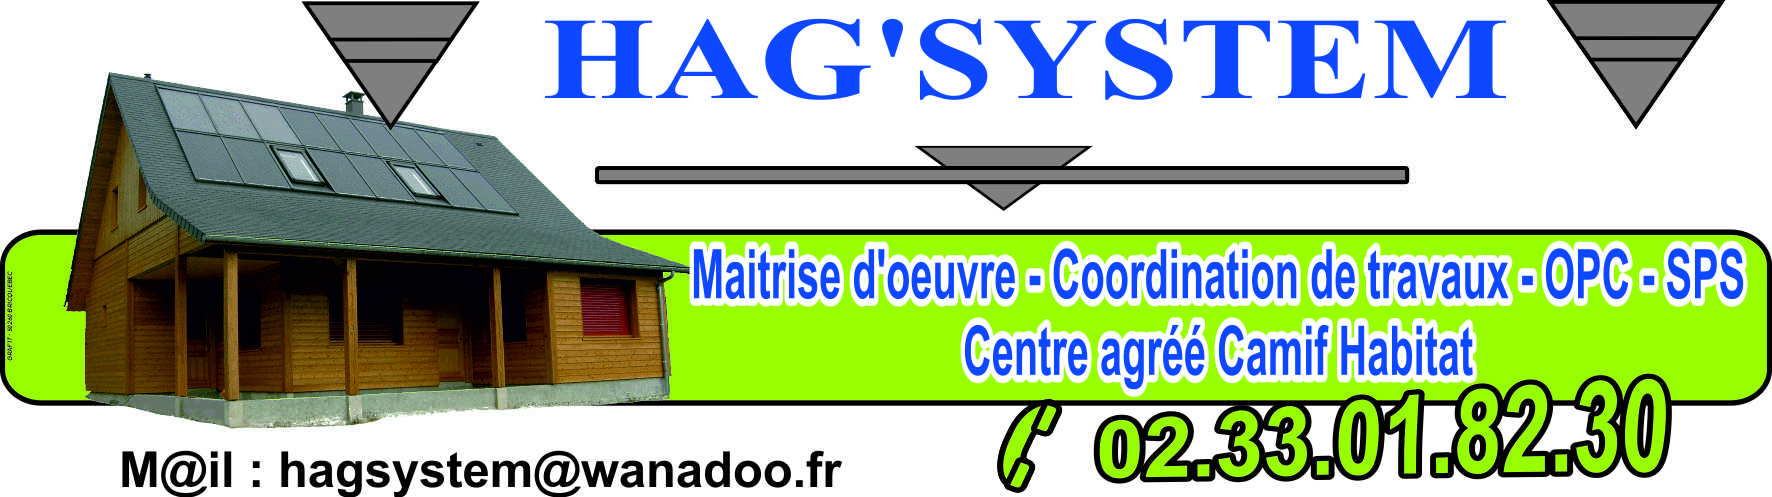 logocomplet_grand hag systeme